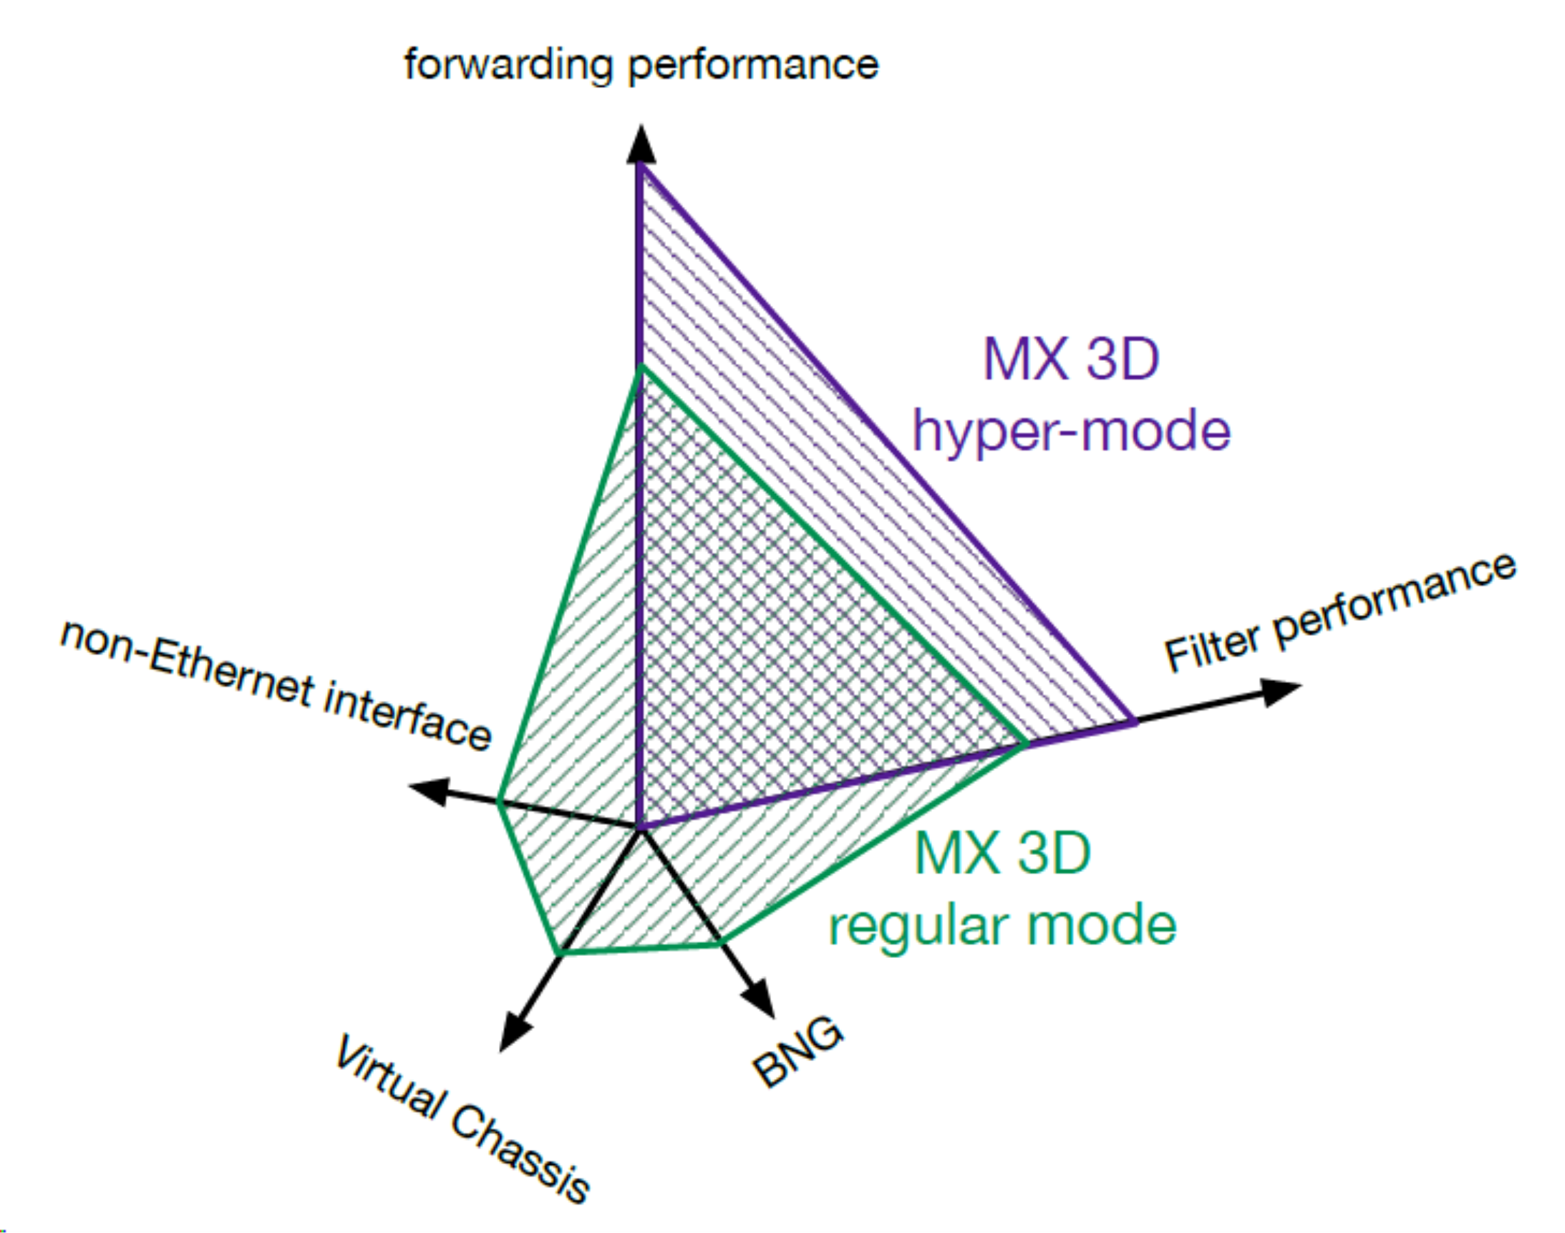 Comparison of regular mode and hypermode performance